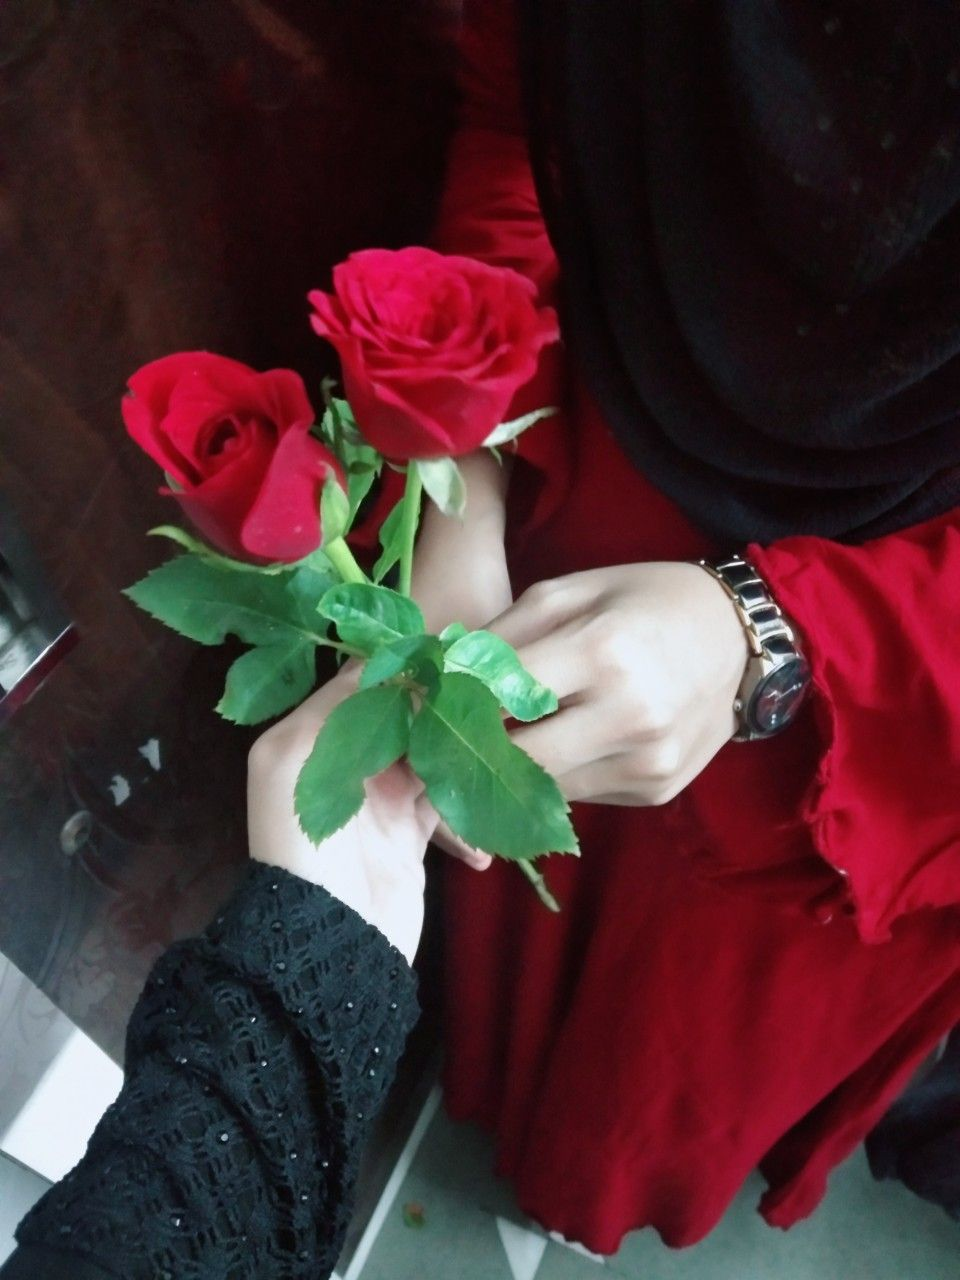 Pin By ŝweet ŝumi On Girly Dp Stylish Girl Pic Love Rose Flower Cute Muslim Couples